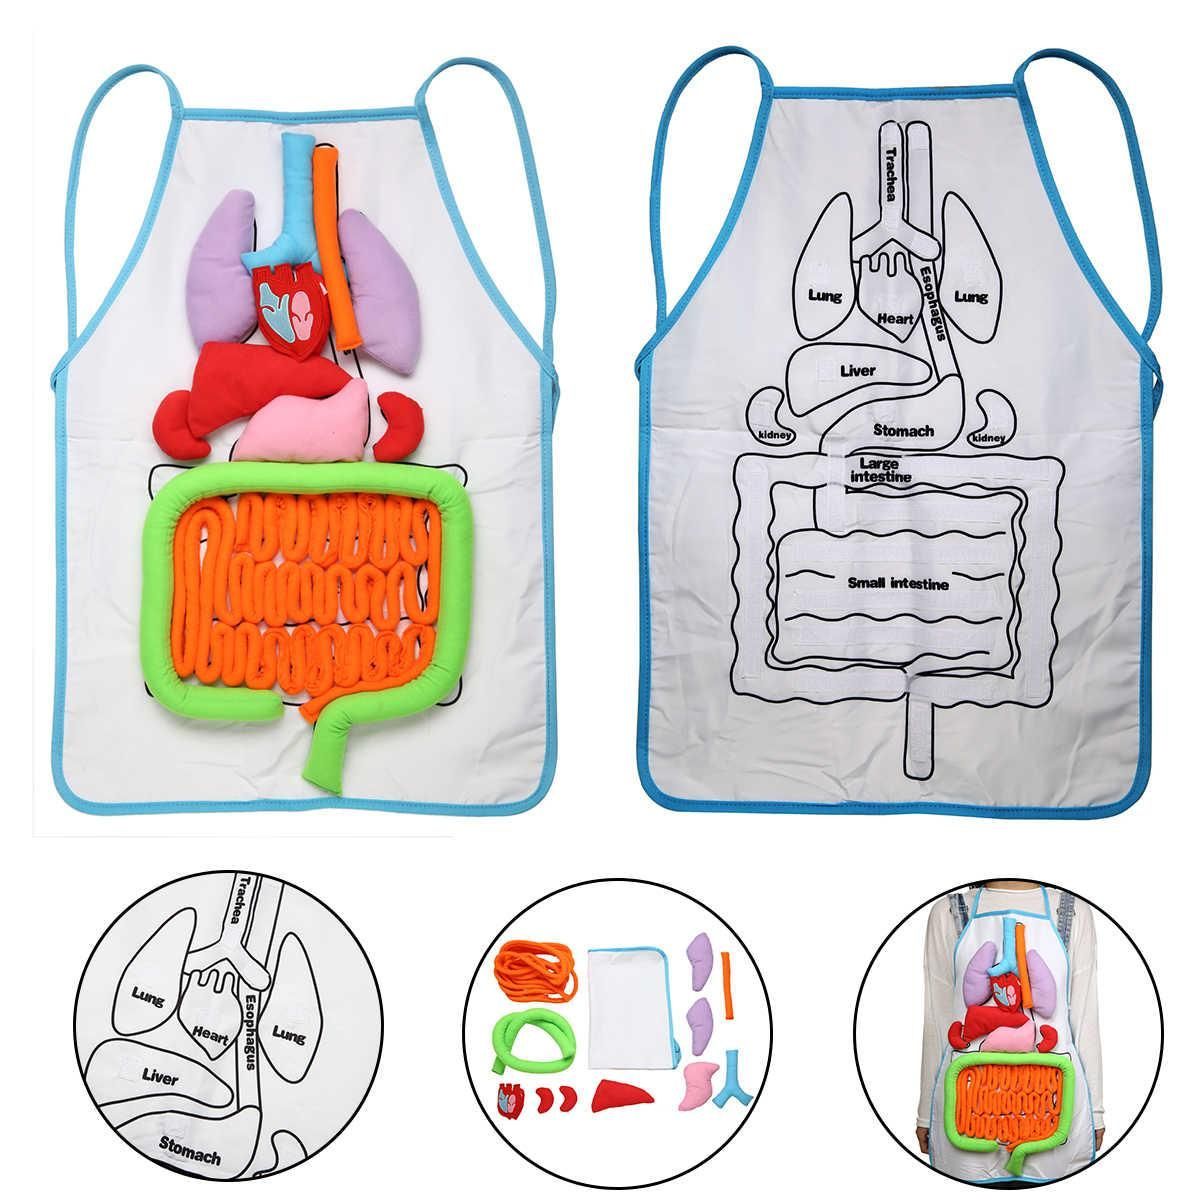 17+ Teach Your Kids Human Anatomy In A Fun Way With This TheAnatomyApron™